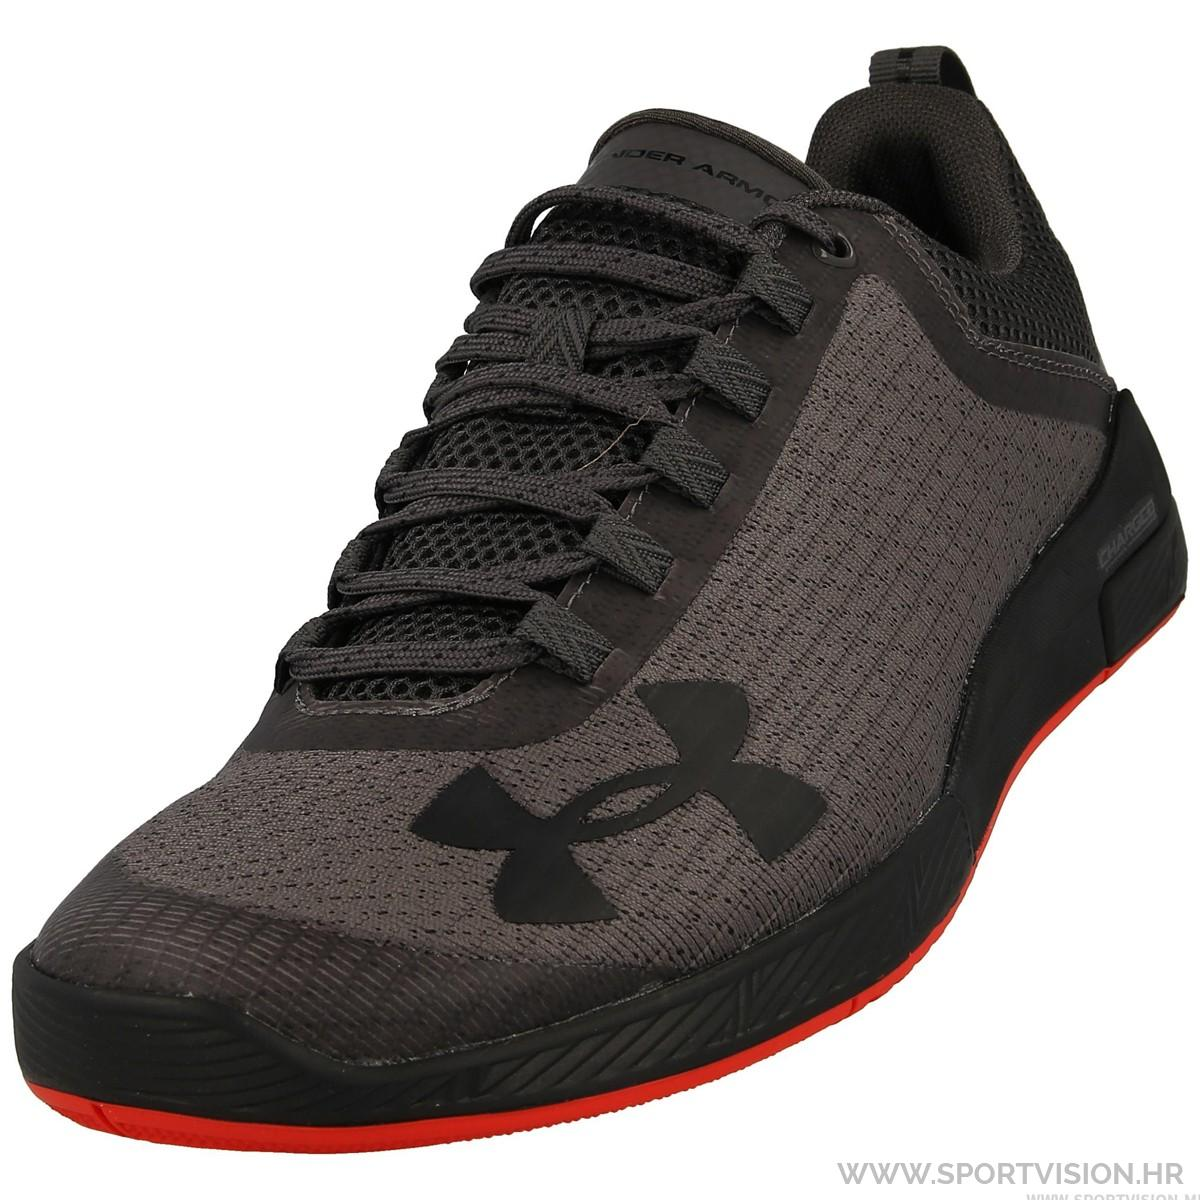 UNDER ARMOUR tenisice CHARGED LEGEND TR